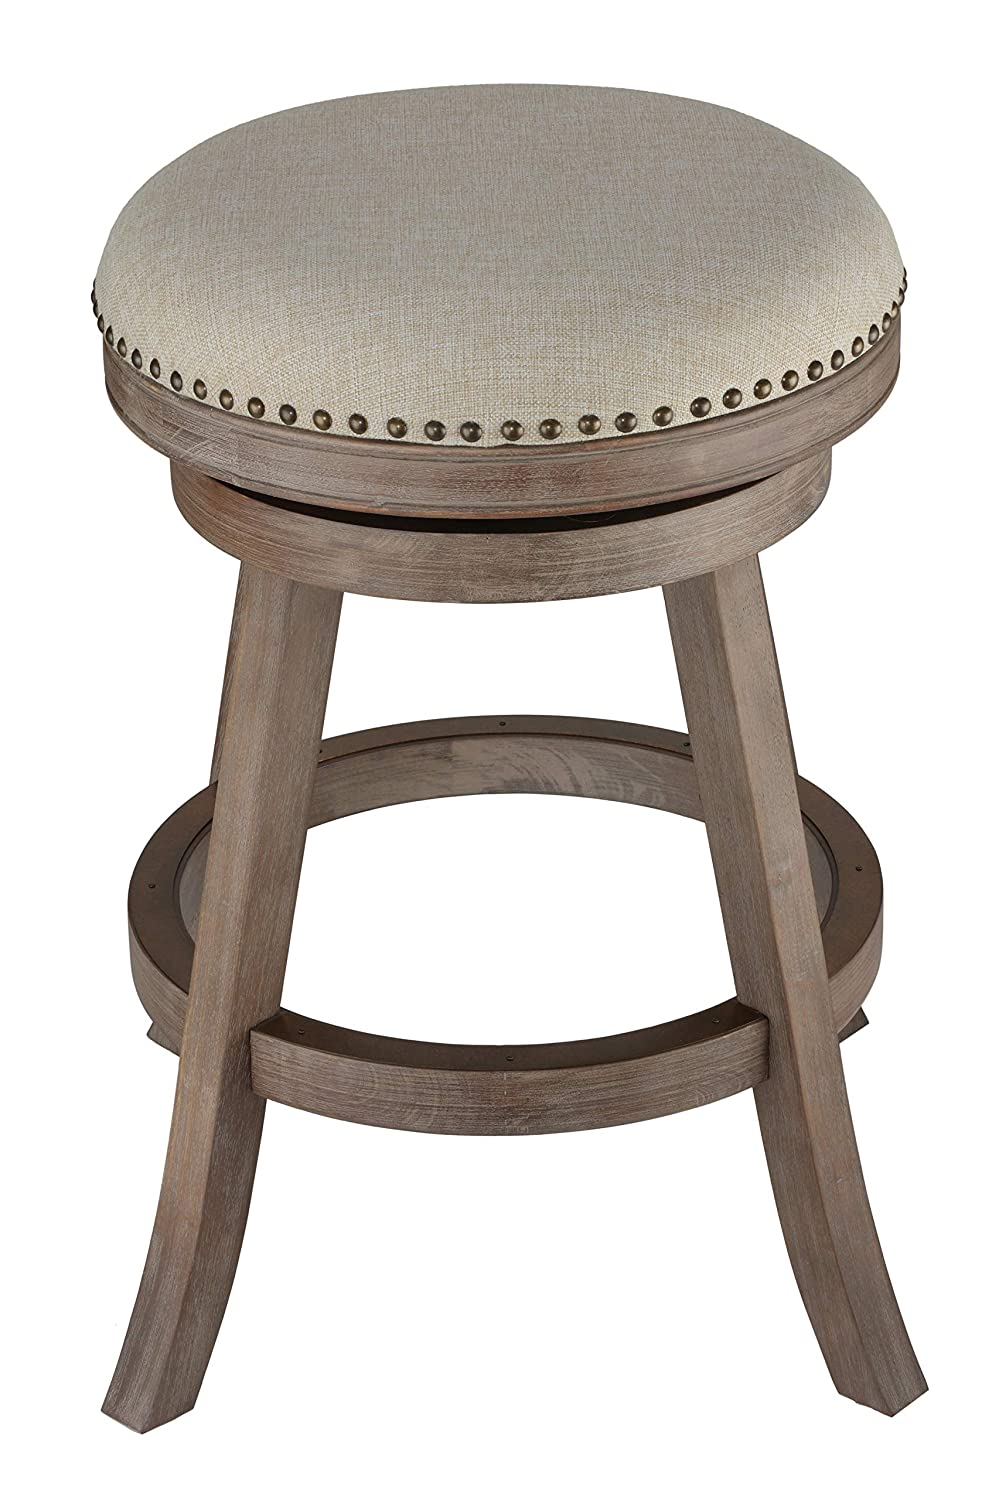 Brilliant Cortesi Home Sadie Backless Swivel Counter Stool In Solid Wood Beige Fabric Ibusinesslaw Wood Chair Design Ideas Ibusinesslaworg